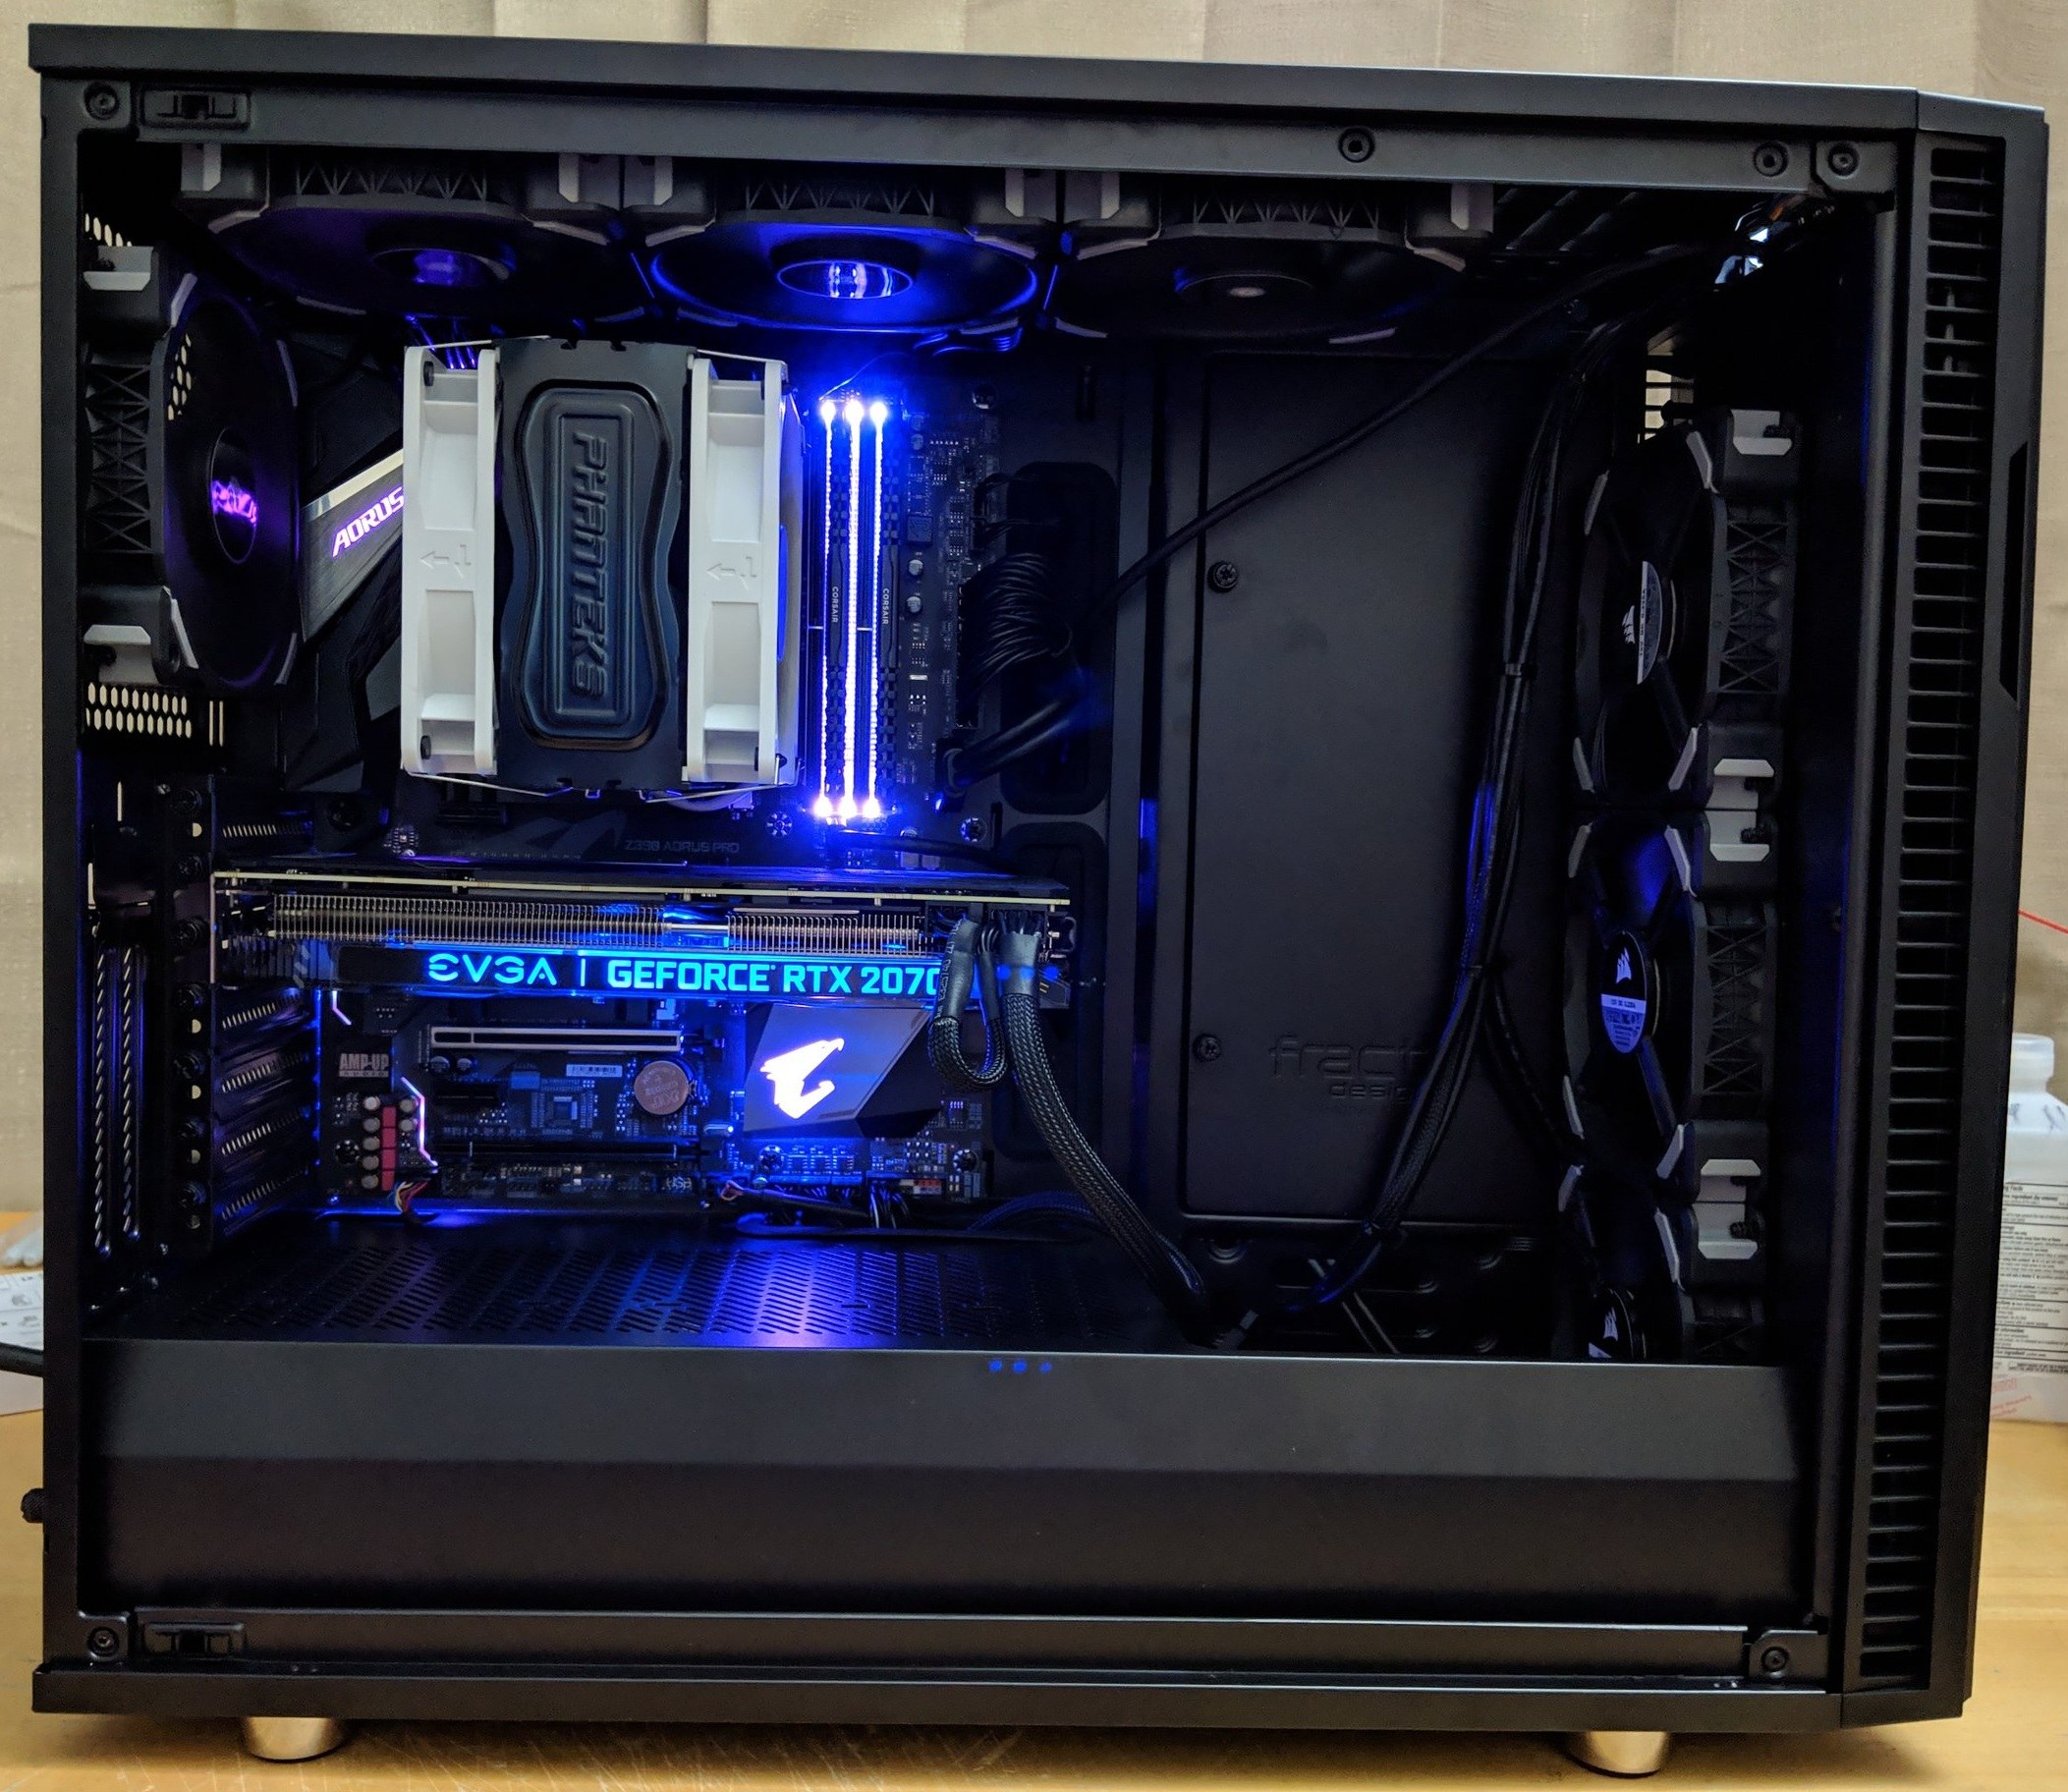 Violet Night 1440p 100hz High Gaming PC